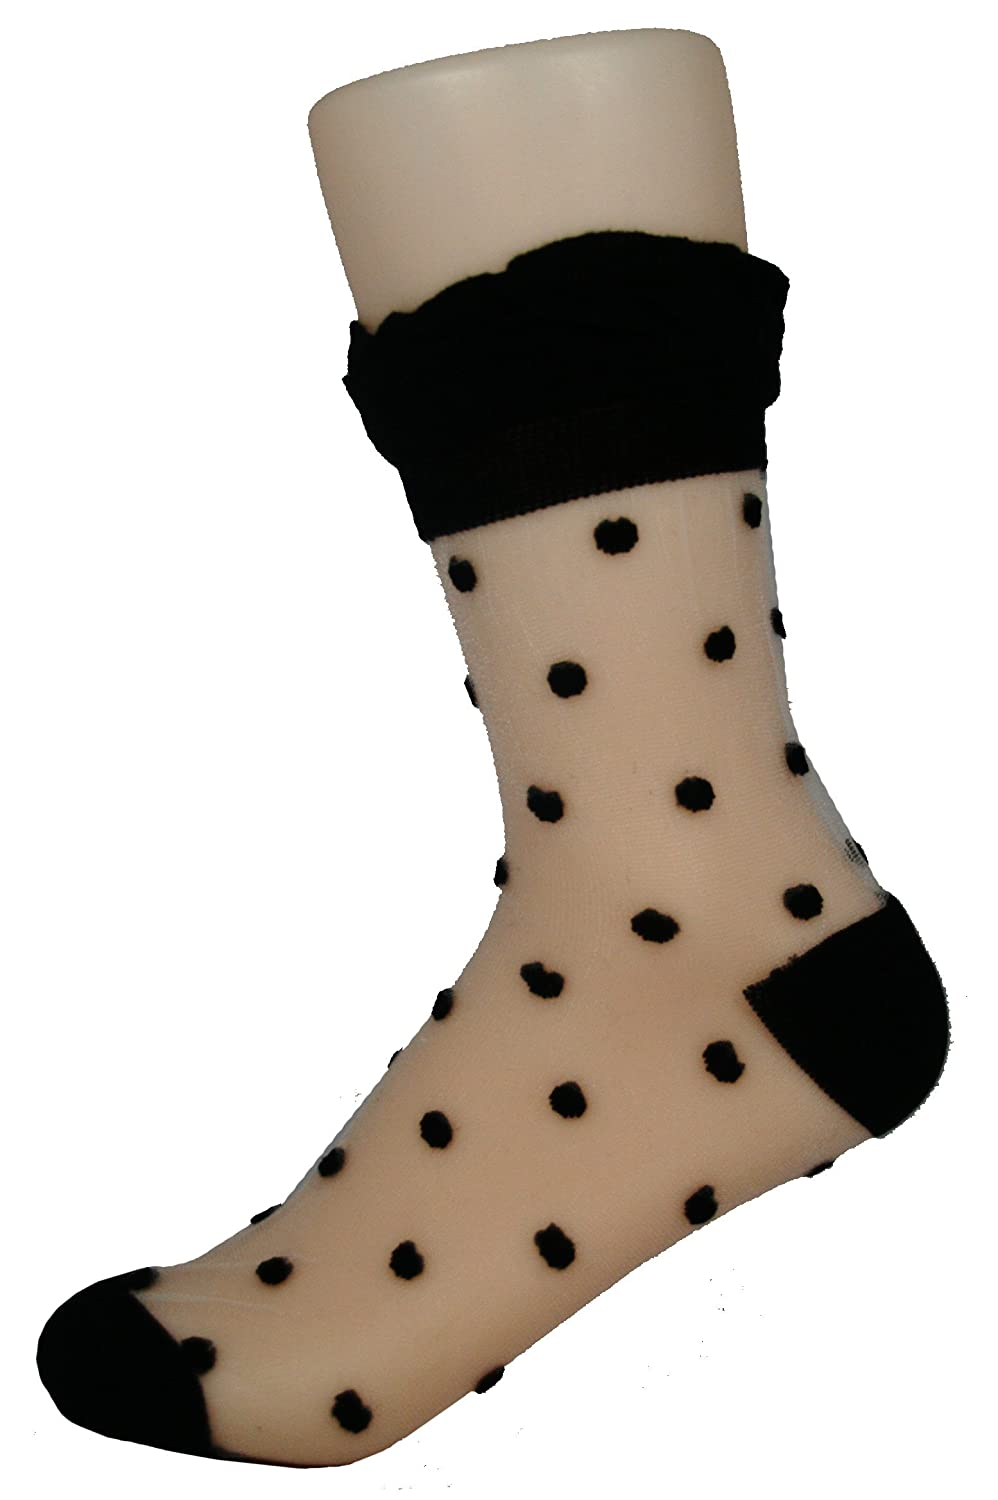 1950s Socks- Women's Bobby Socks AMU Lace-Black Dot Sheer Crew Sock with Stiched Pattern and Trim - Black Dots $9.60 AT vintagedancer.com